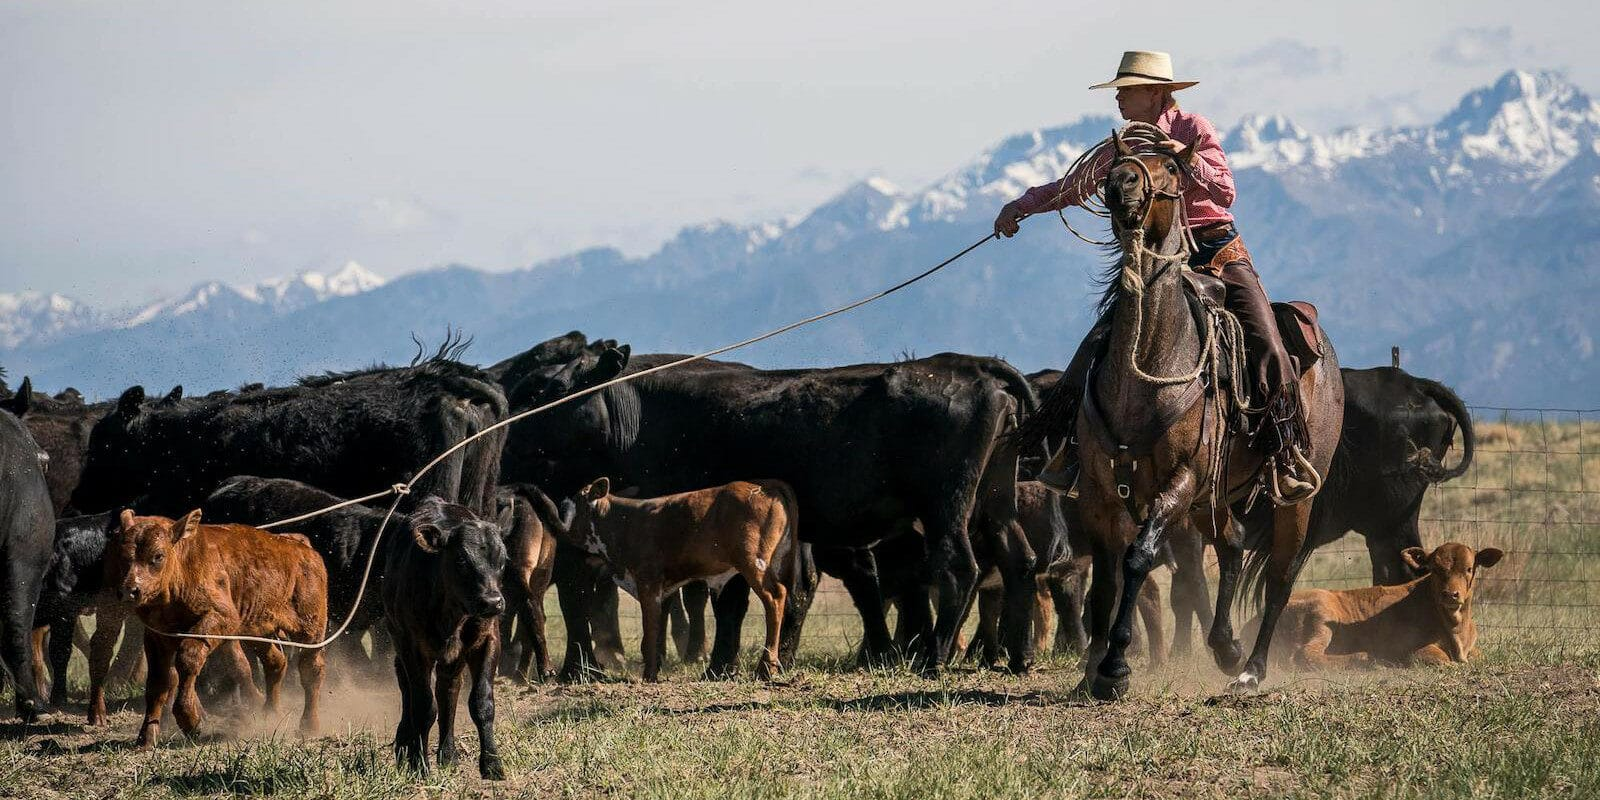 Image of a person herding cattle at Ranchlands Zapata Ranch in Mosca, Colorado